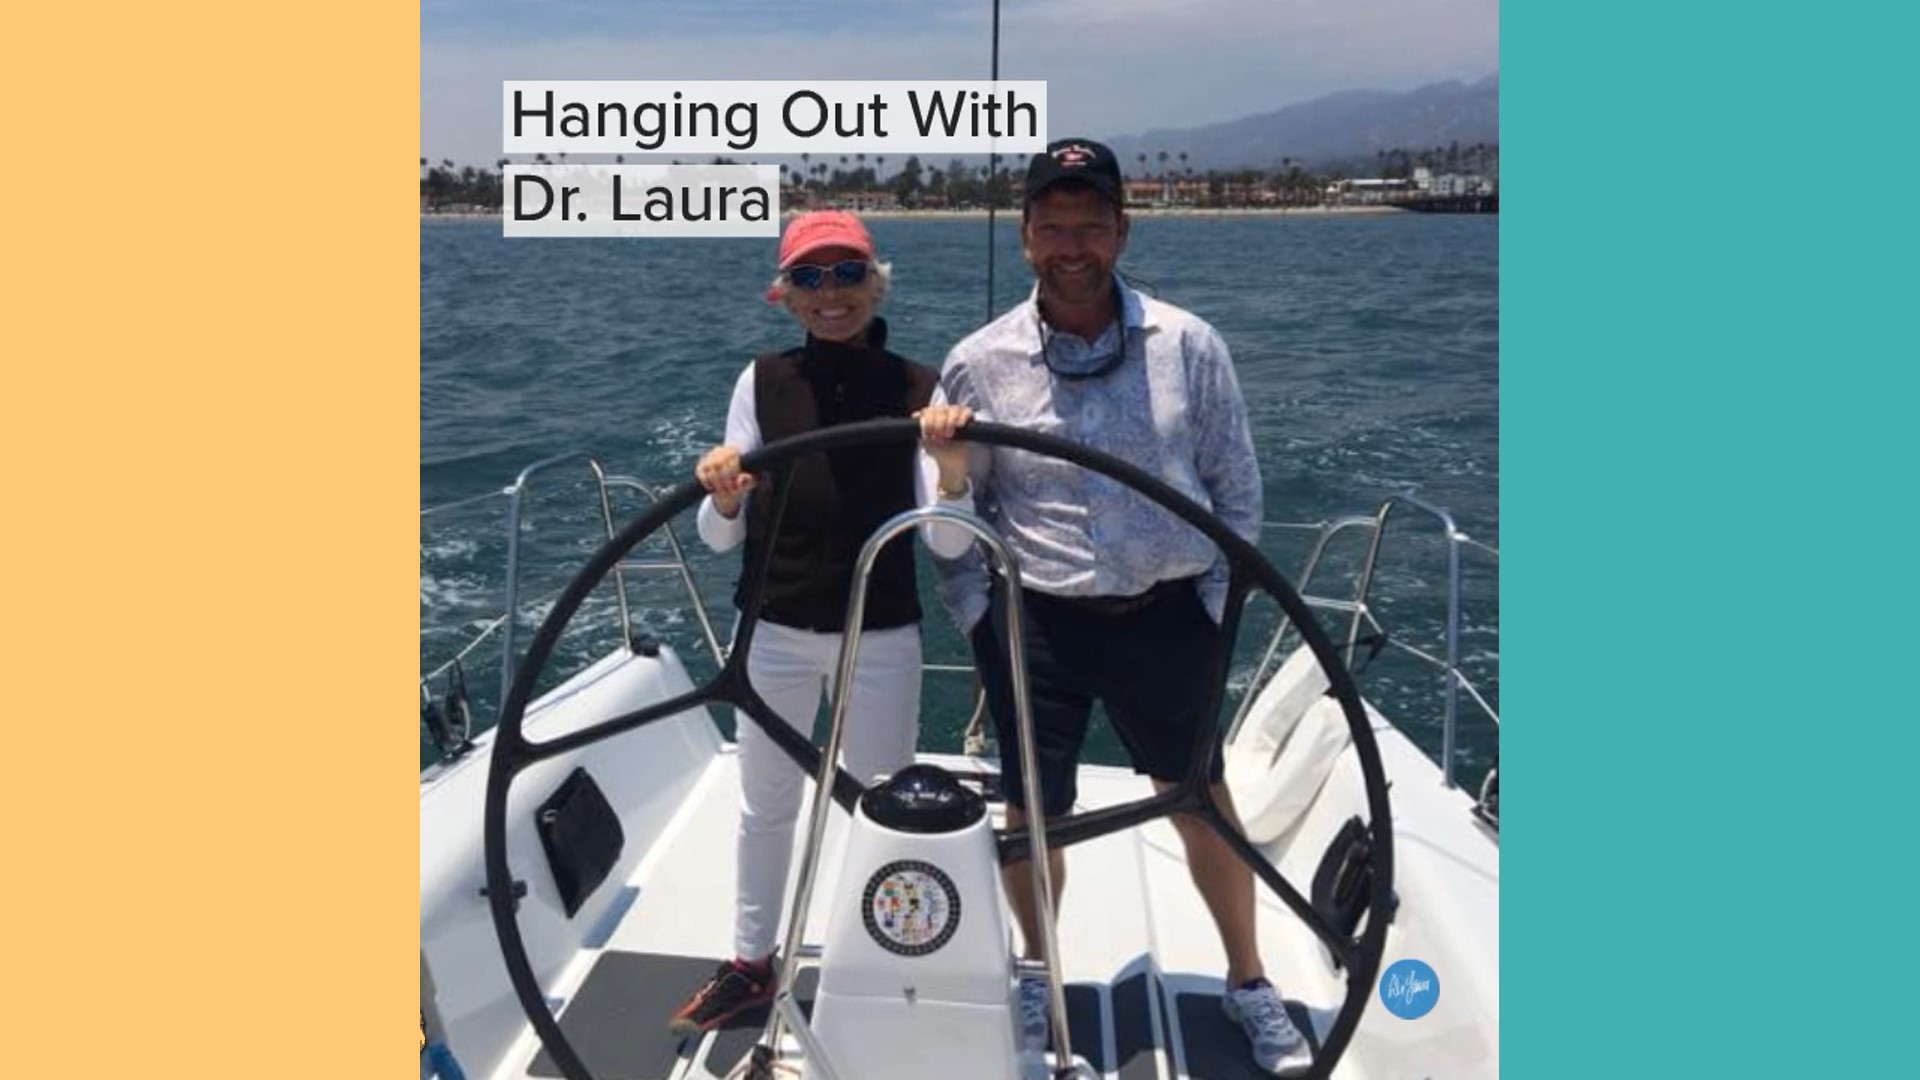 YouTube: Hanging Out With Dr. Laura